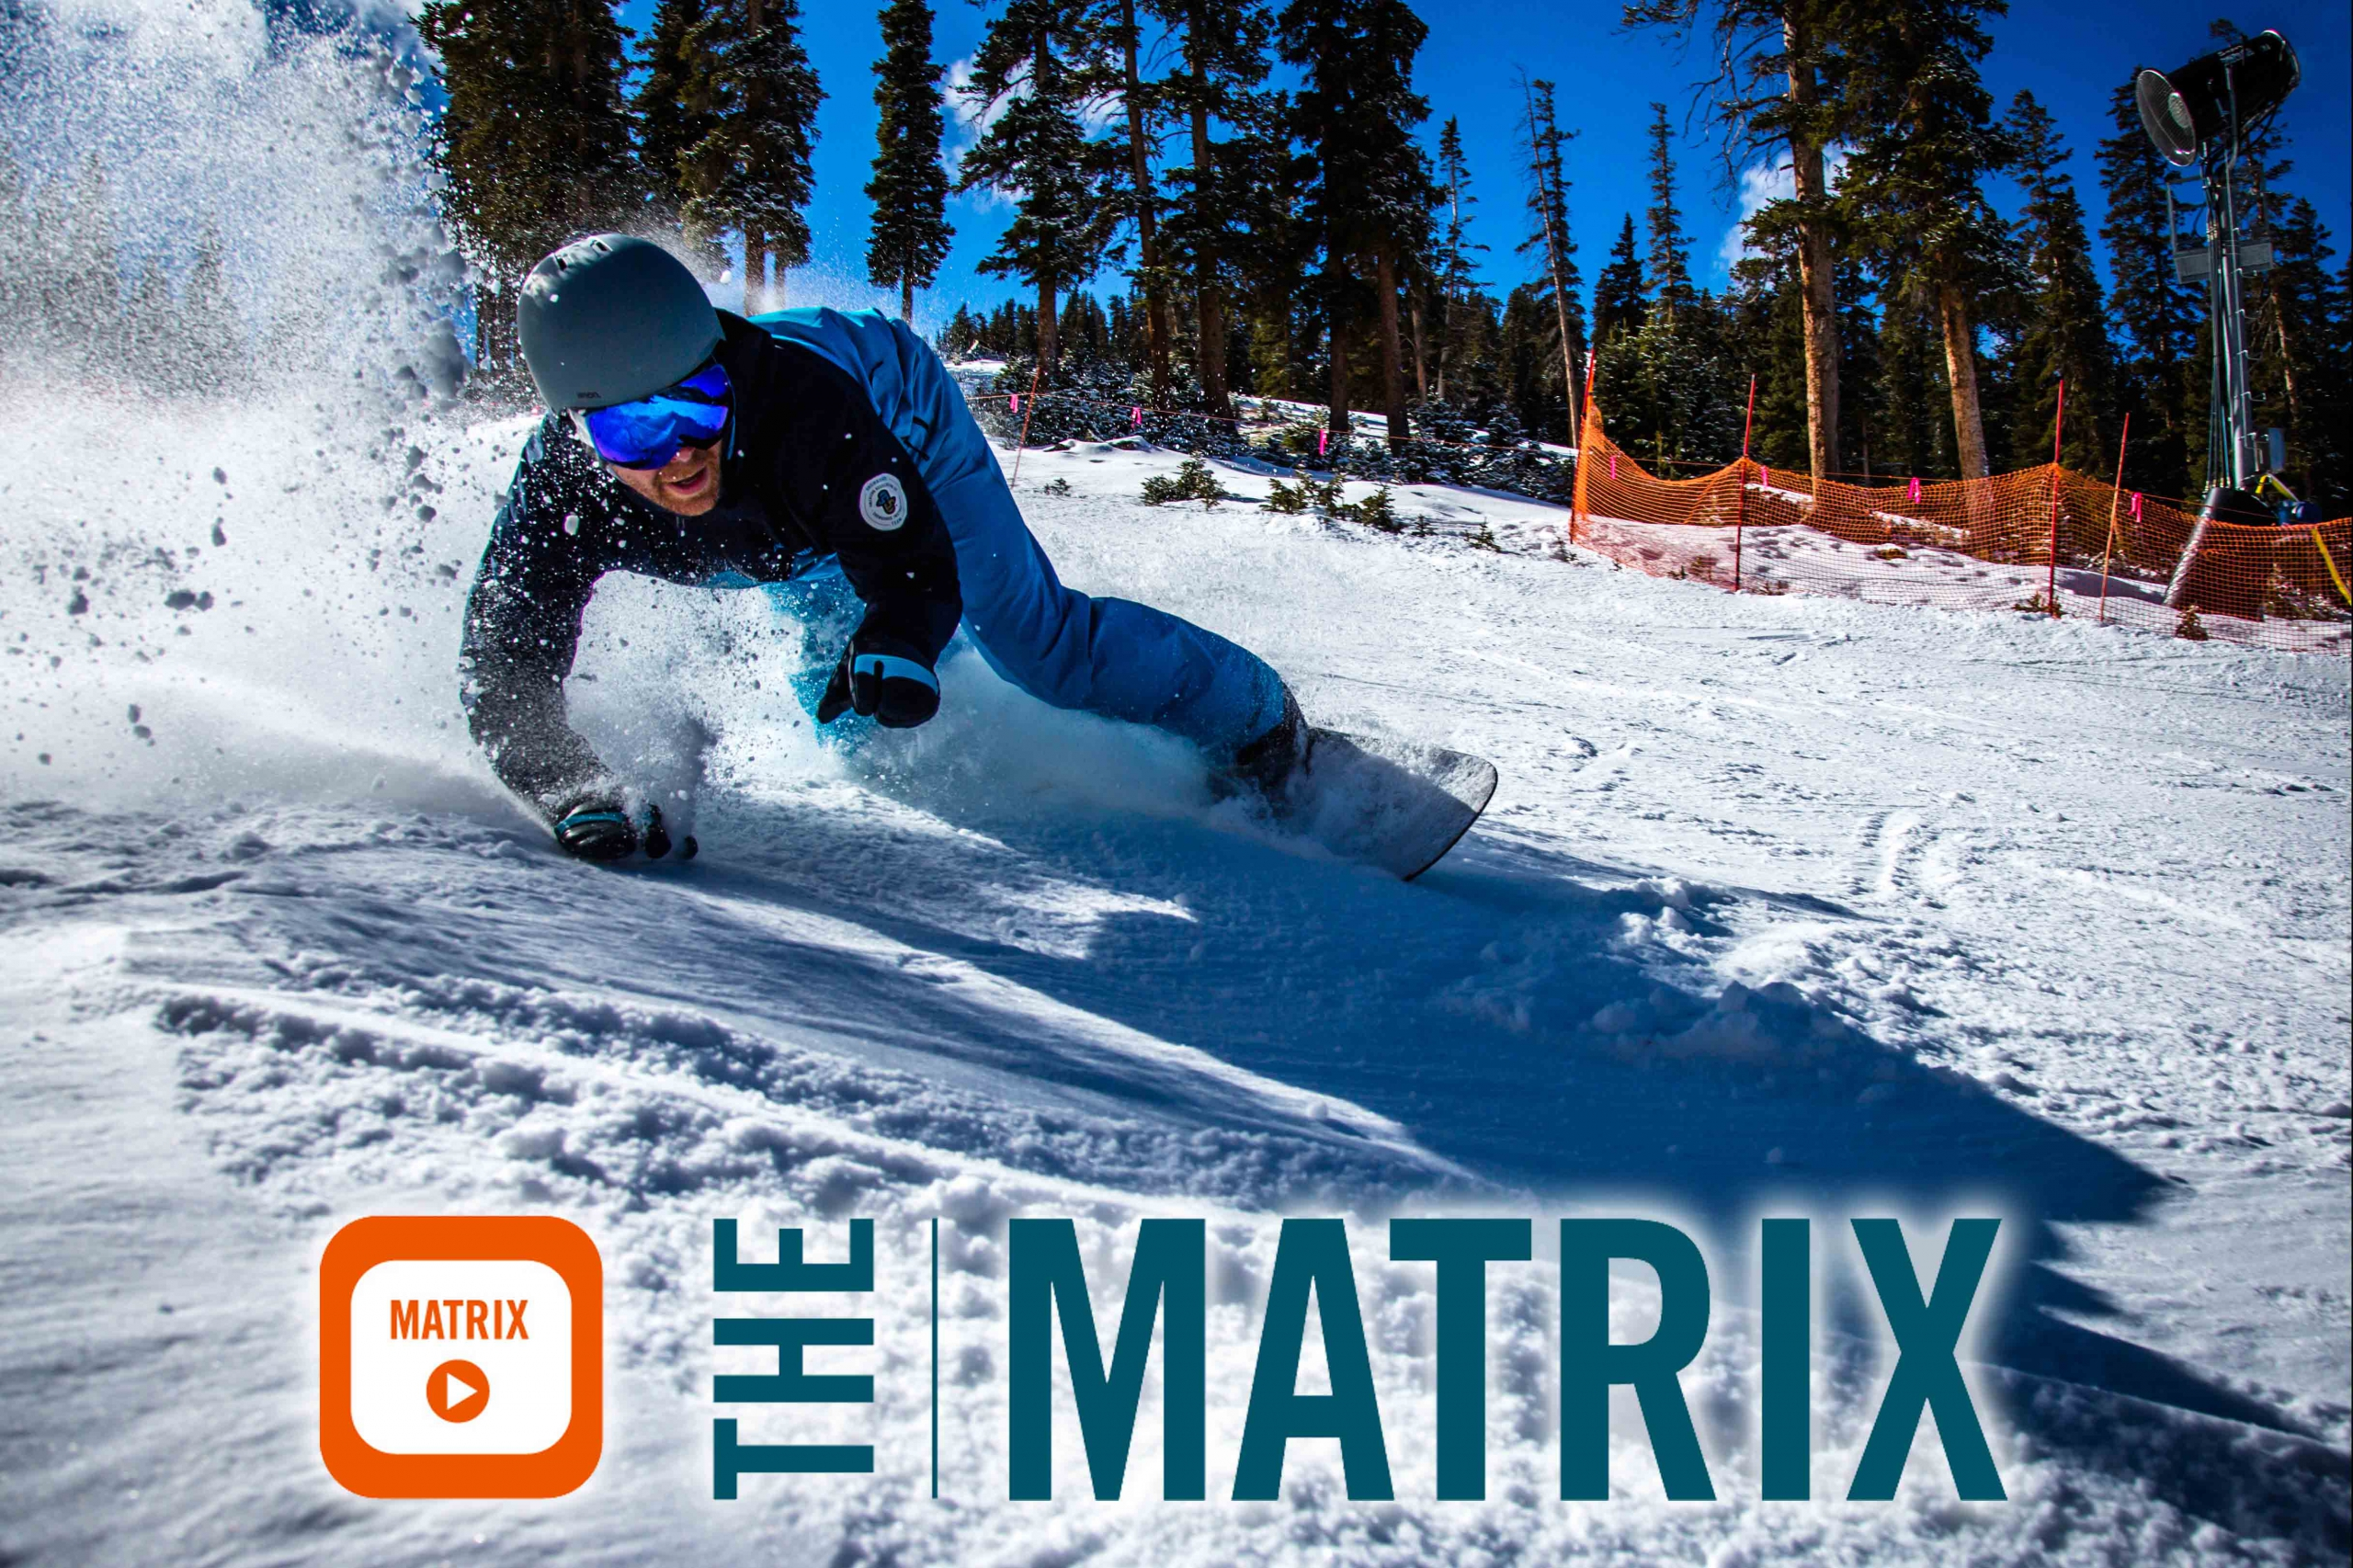 A snowboarder carves across the snow and image reads the matrix